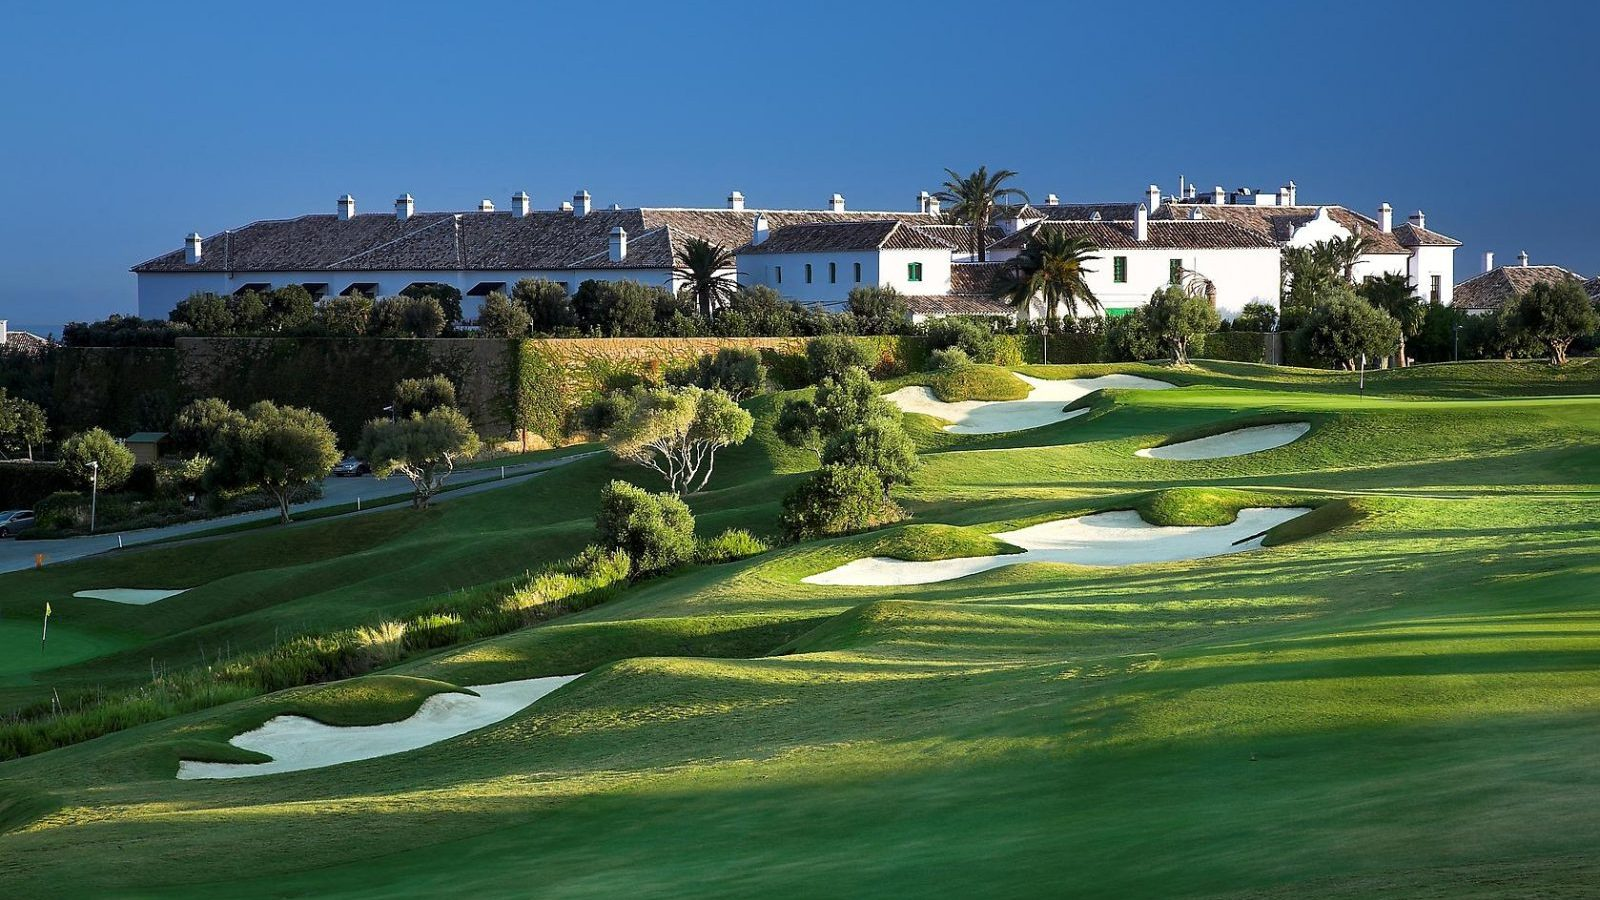 Costa-del-Sol-Spain-Golf-Finca-Cortesin